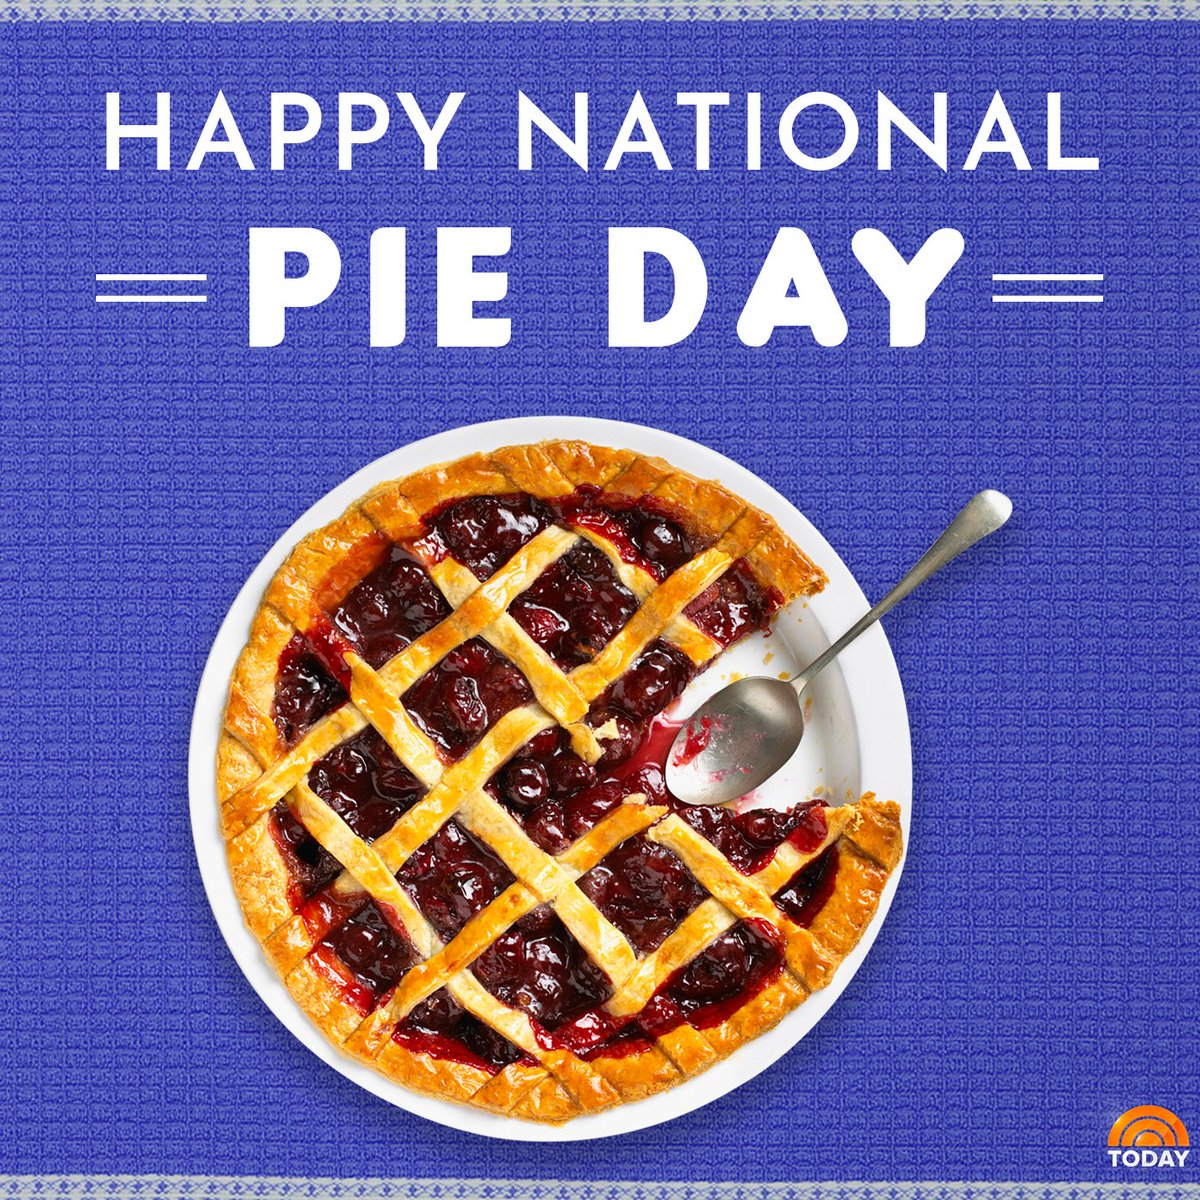 Grab yourself a slice of heaven because it's #NationalPieDay!